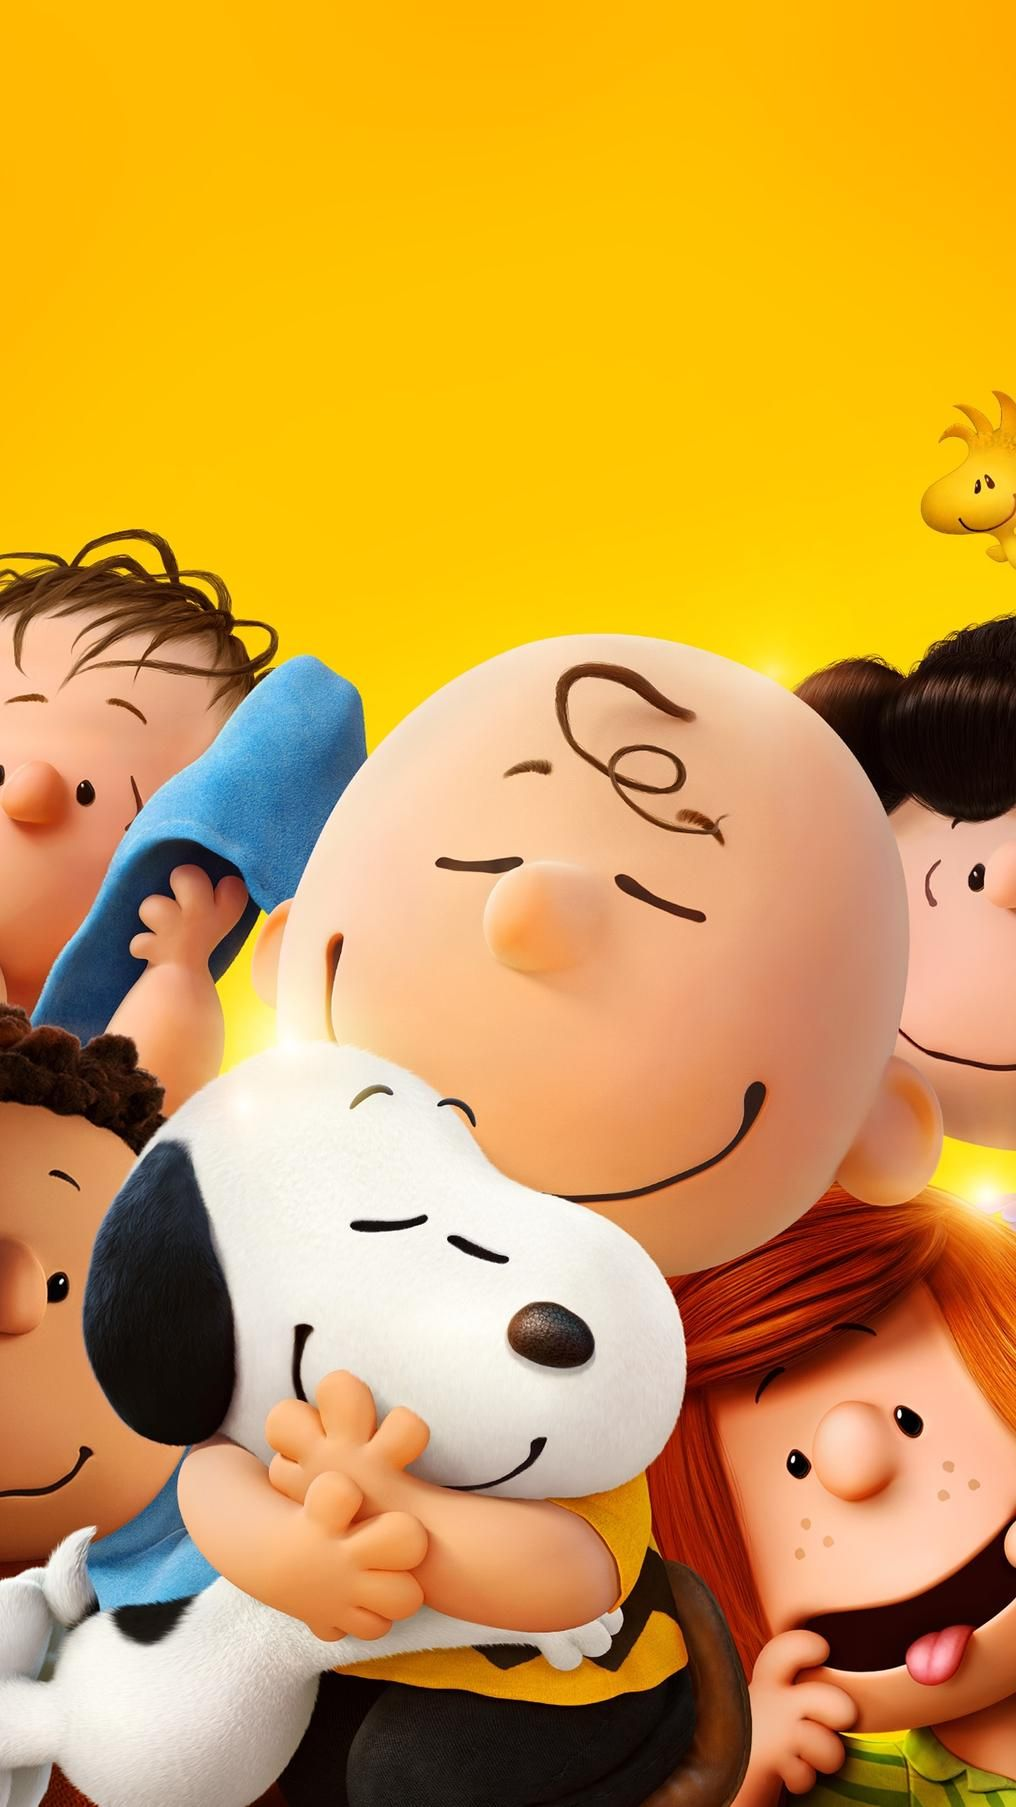 The Peanuts Movie (2015) Phone Wallpaper Snoopy